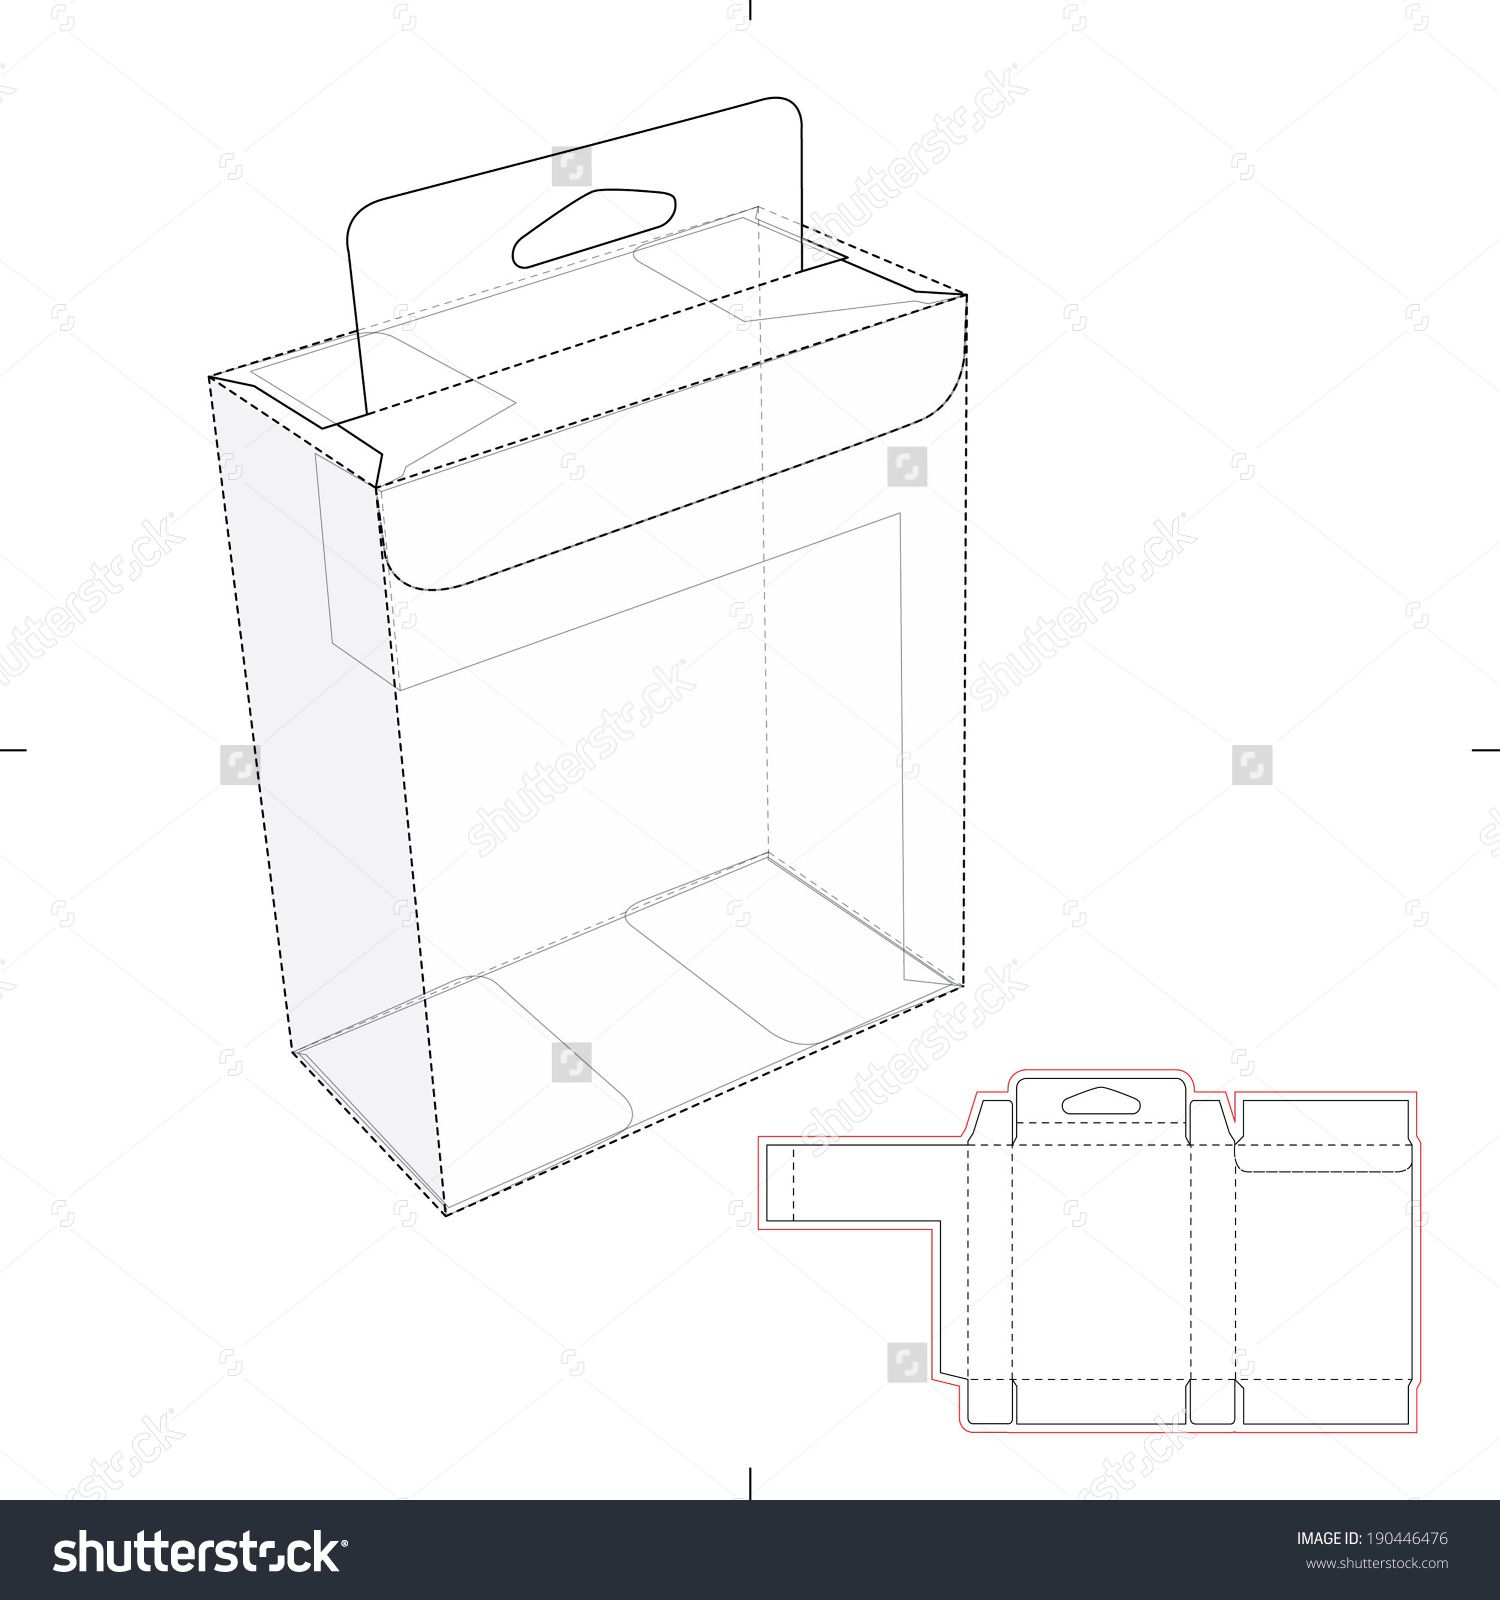 Box With Shelf Hanging Holes And Die Cut Layout Stock Vector Illustration 190446476 : Shutterstock